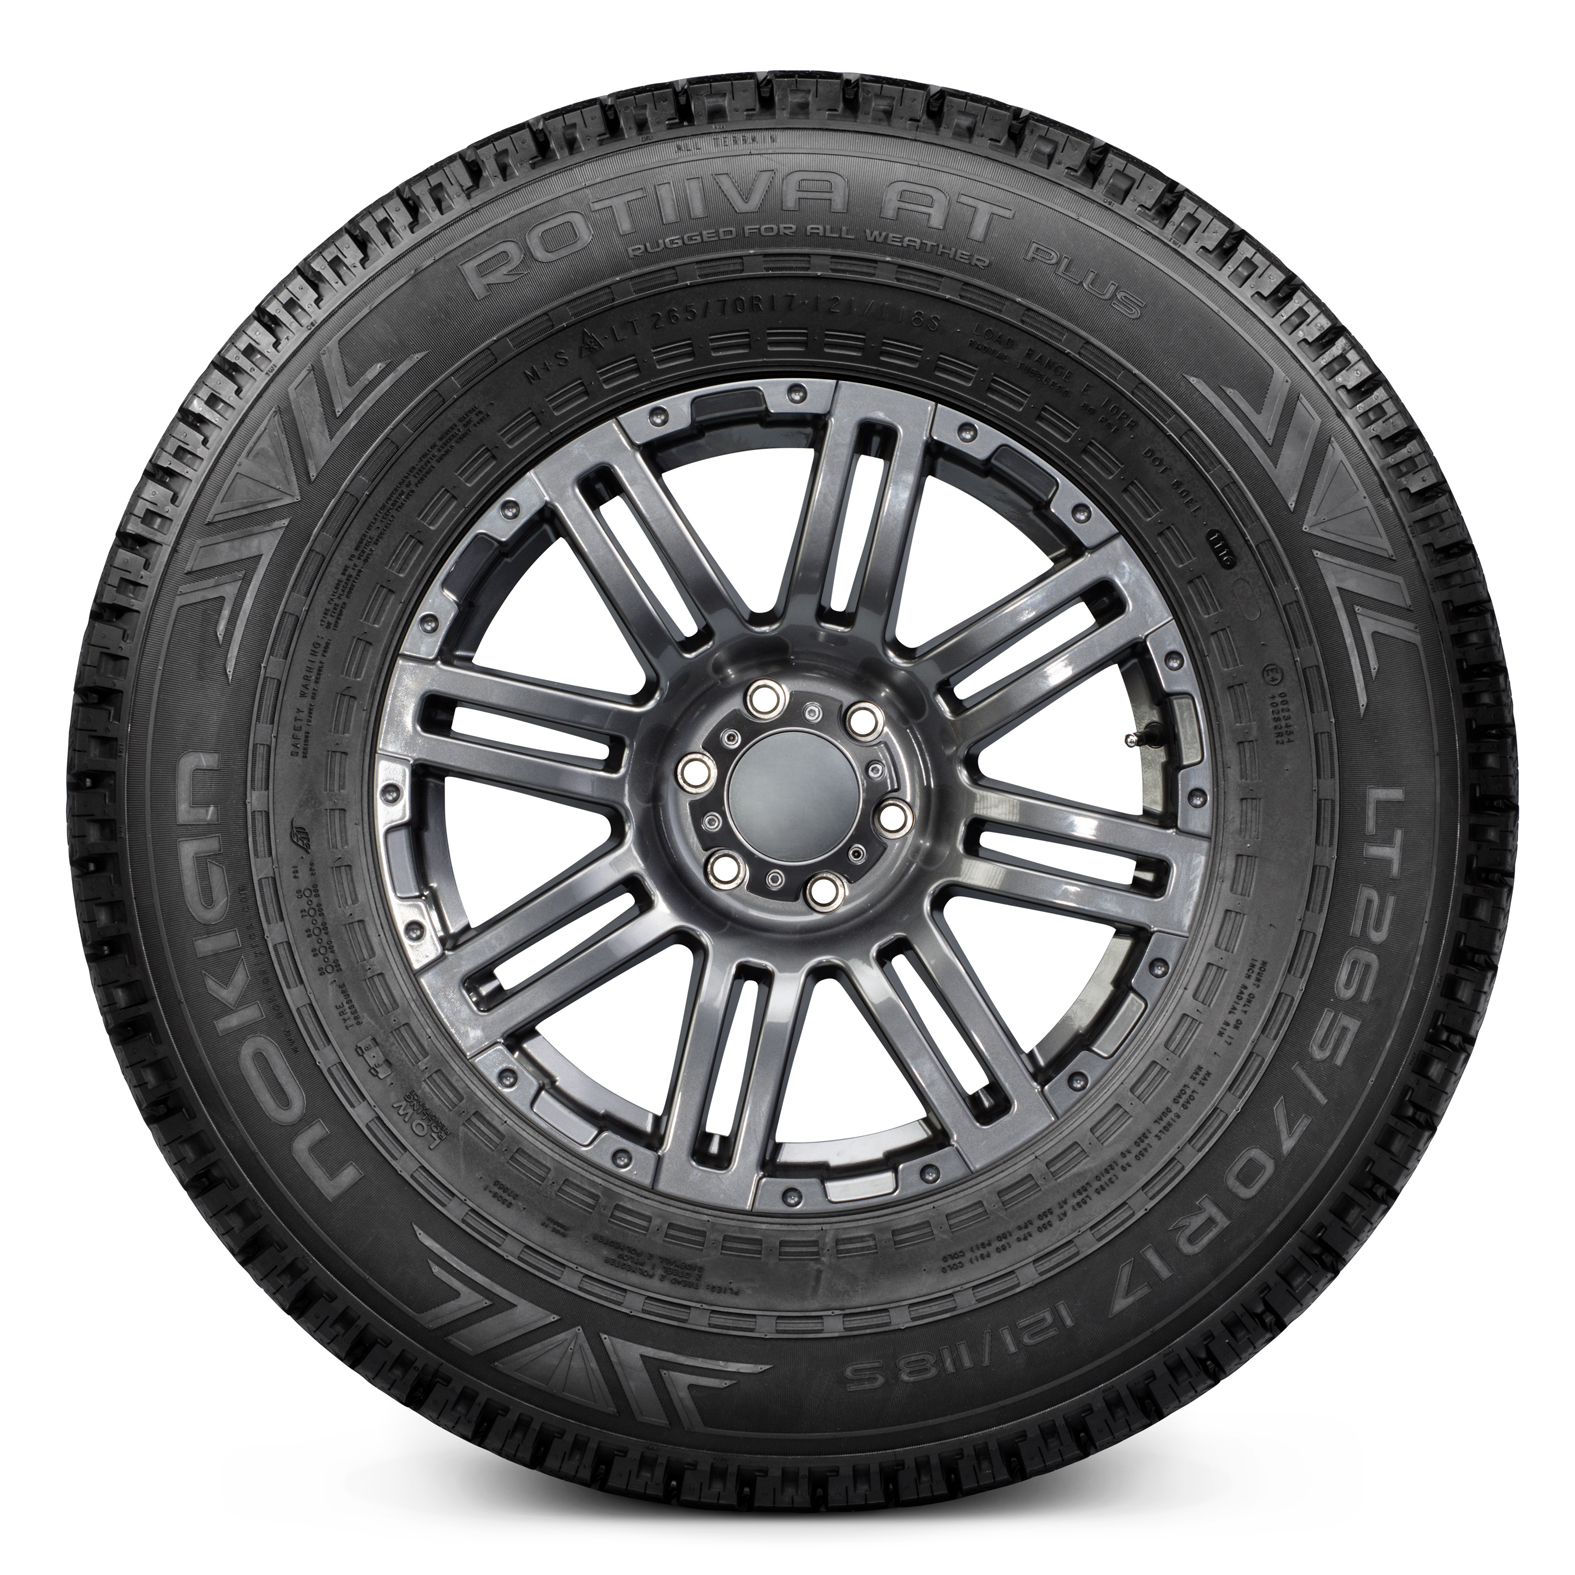 Nokian ROTIIVA AT PLUS 285/70 R17 TL S Off Road ohne Winter !!